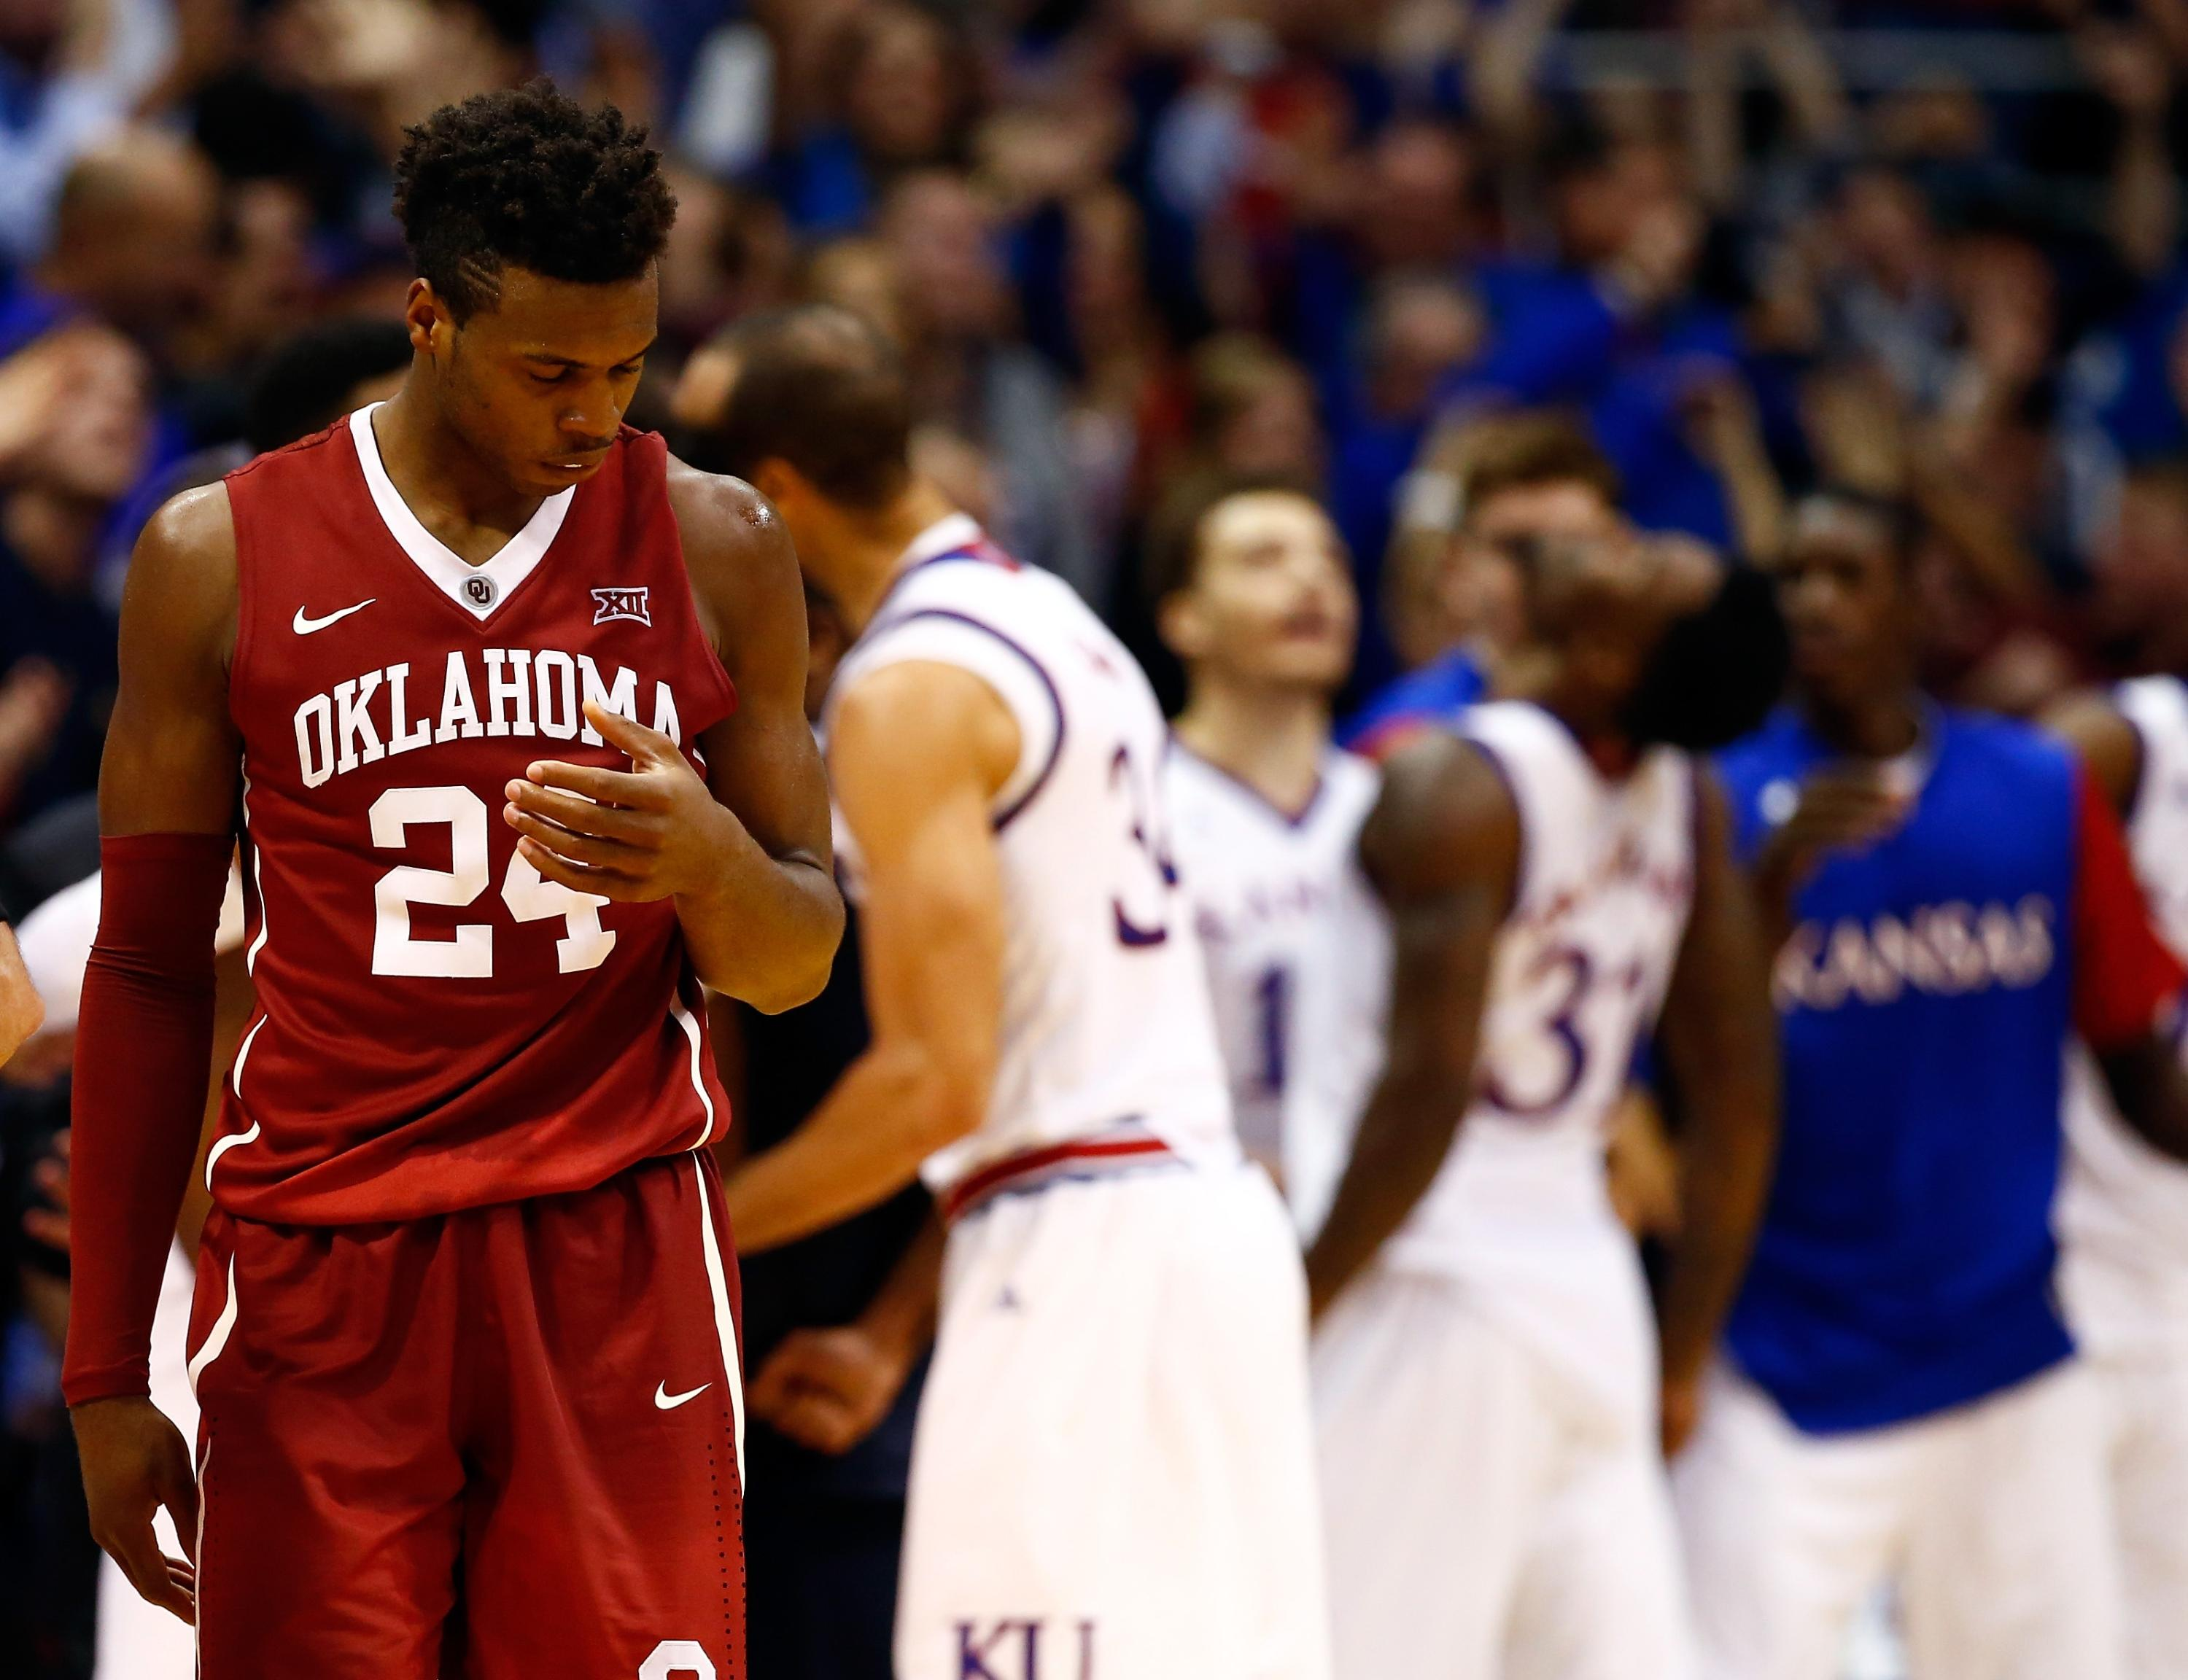 Brad vs. the Book: Revenge a dish best served cold for Sooners